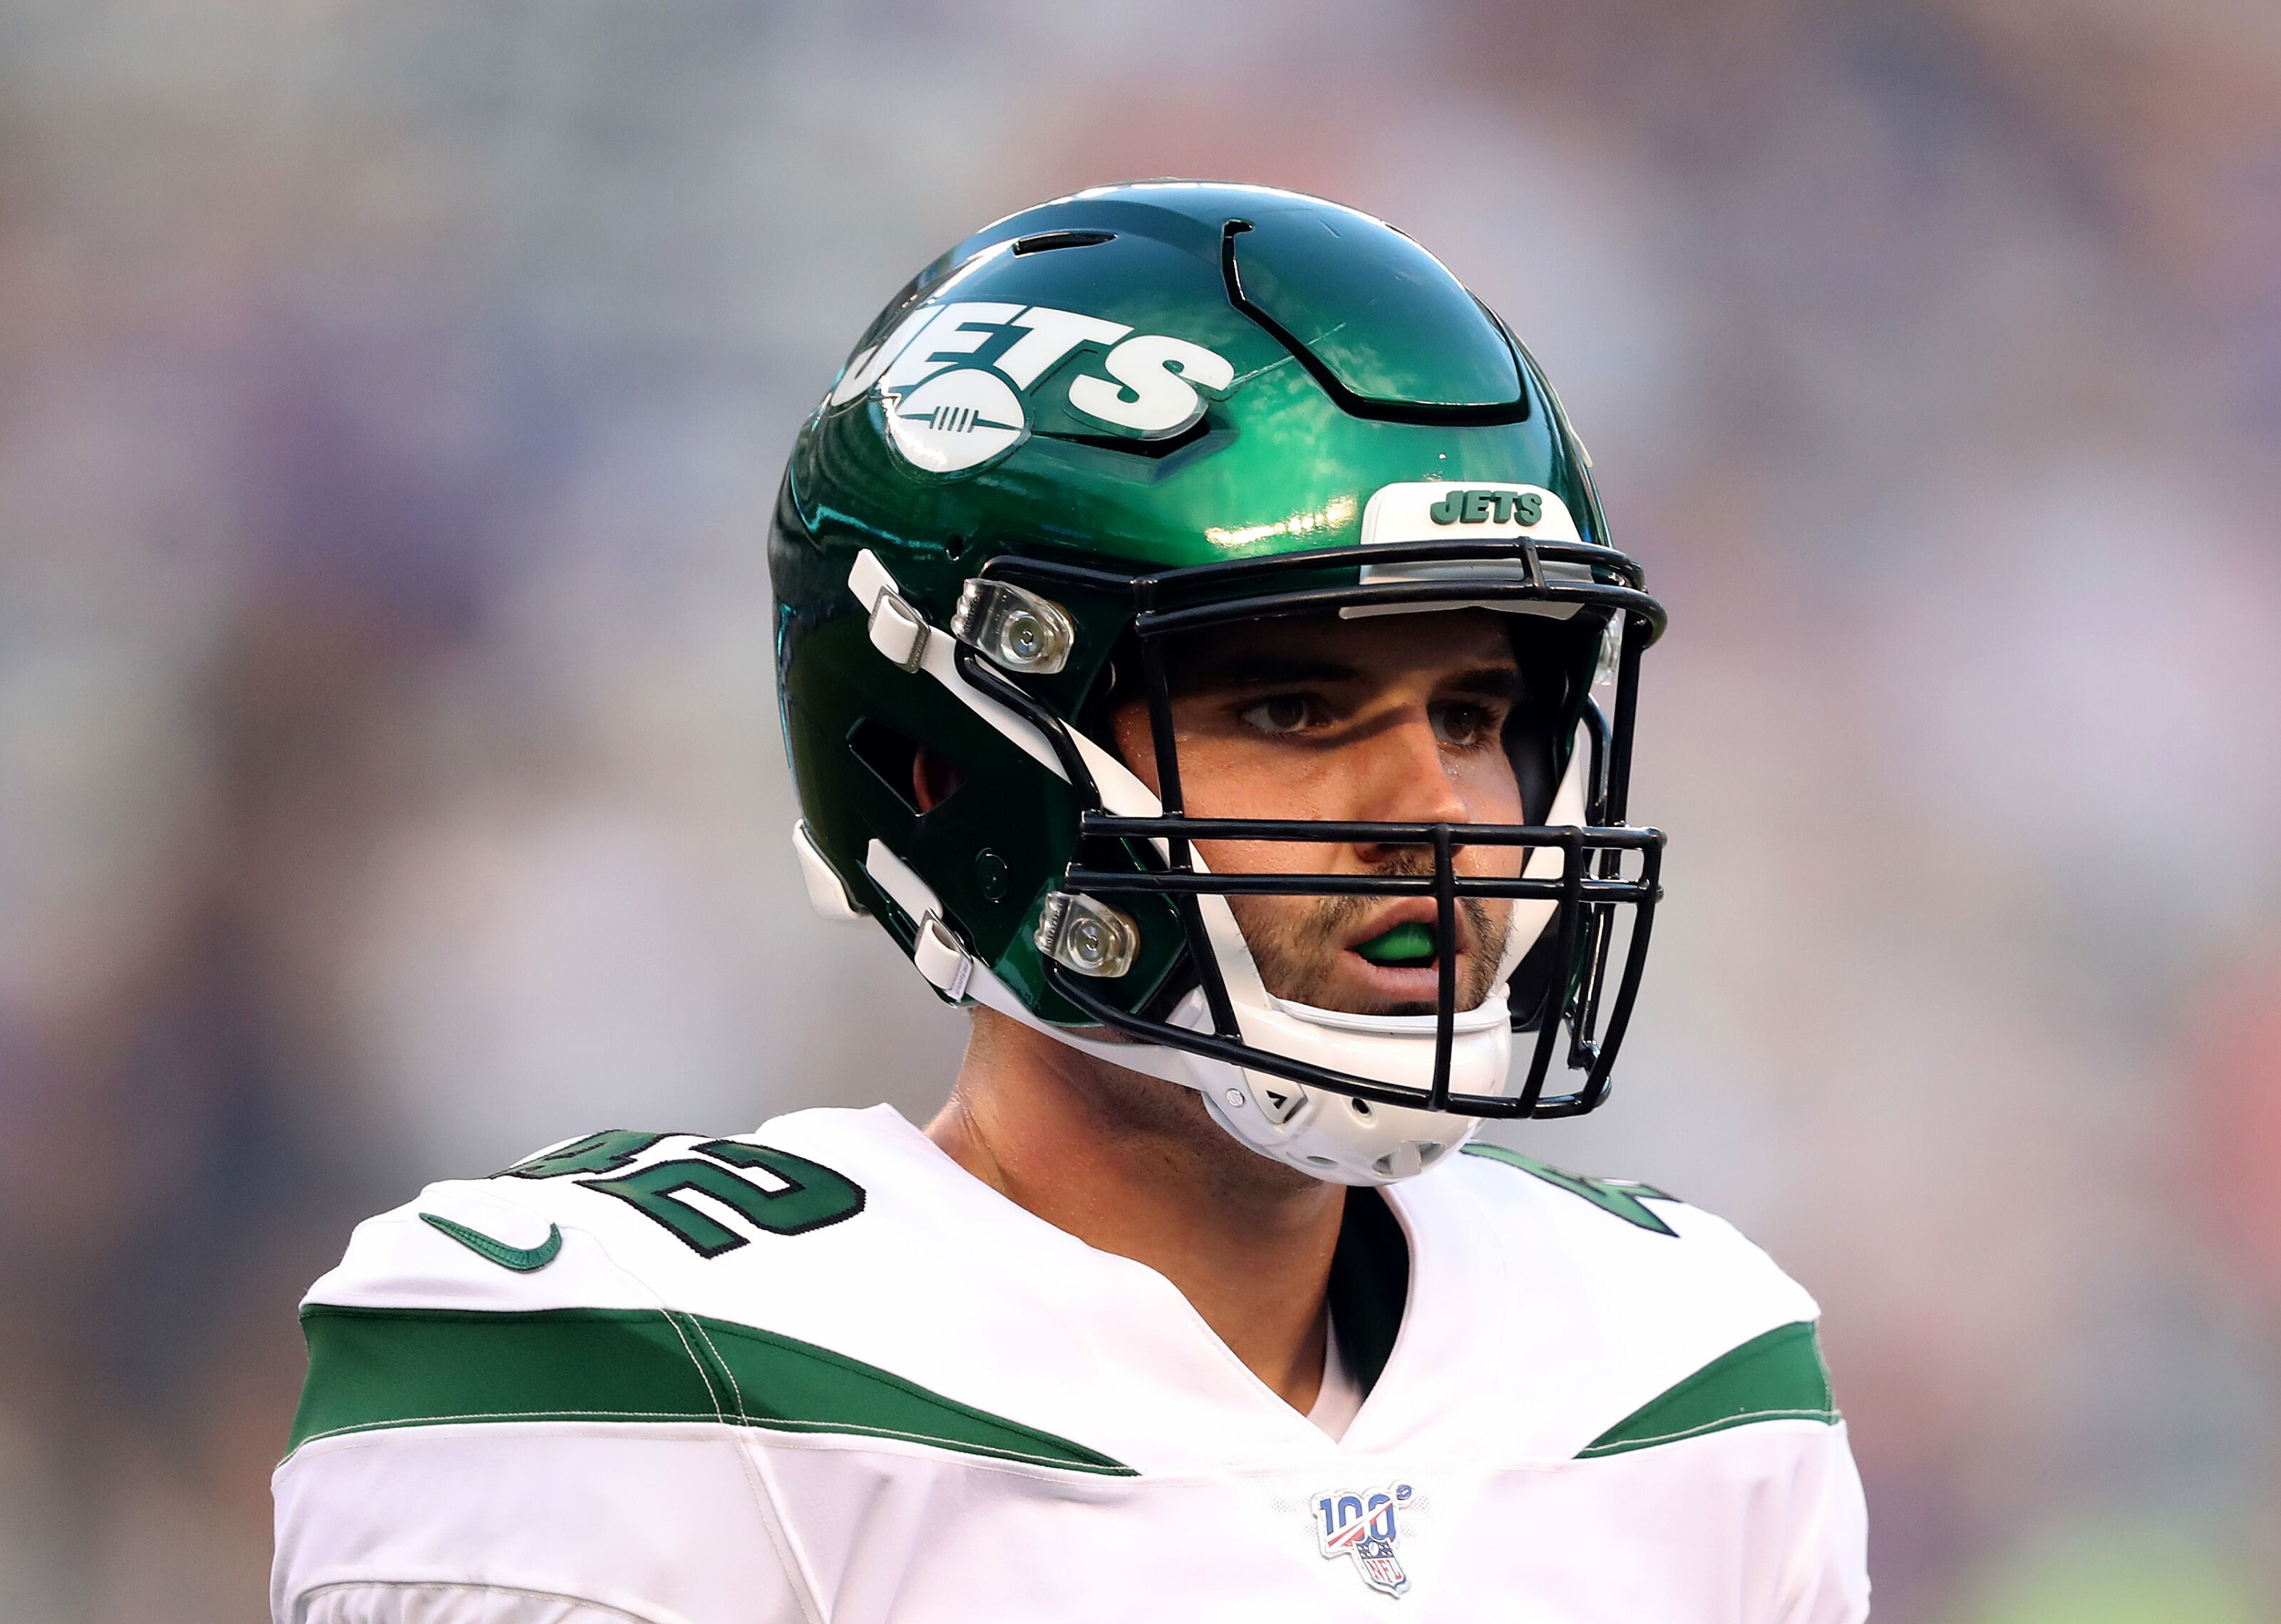 Thomas Hennessy signs contract extension with New York Jets